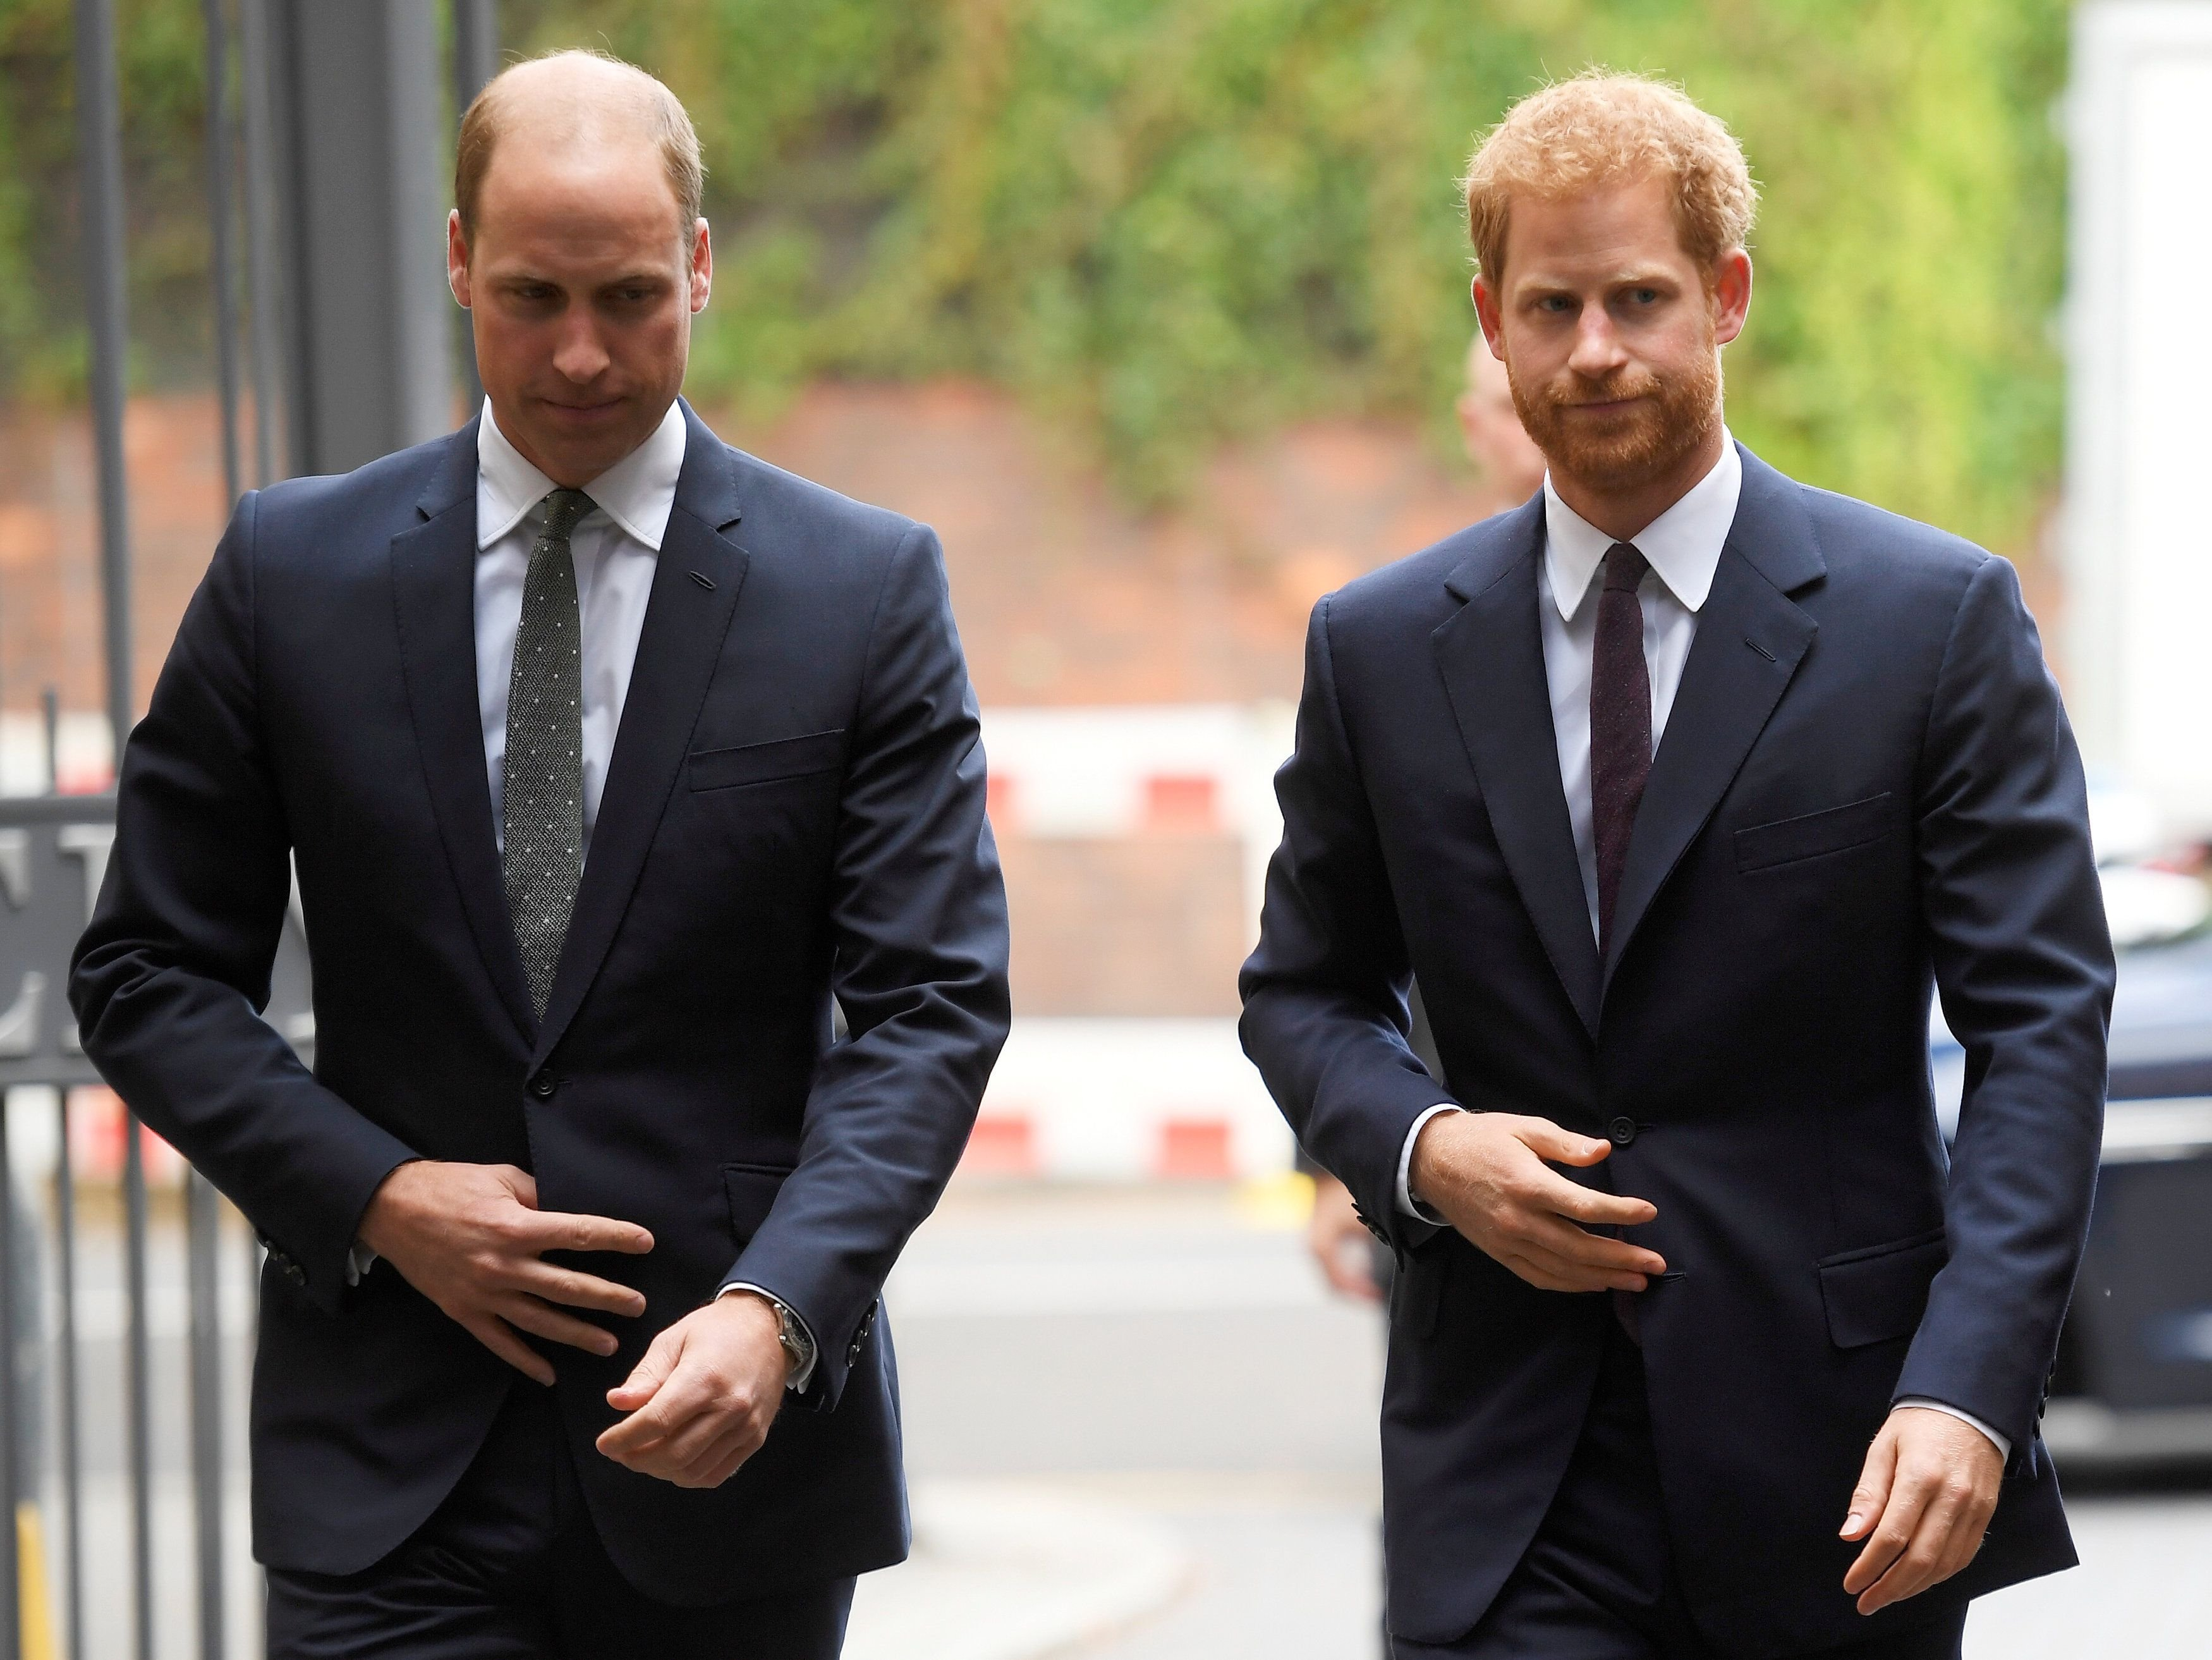 Prince William and Prince Harry during a visit to the newly established Royal Foundation Support4Grenfell community hub on September 5, 2017 in London, England. | Source: Getty Images